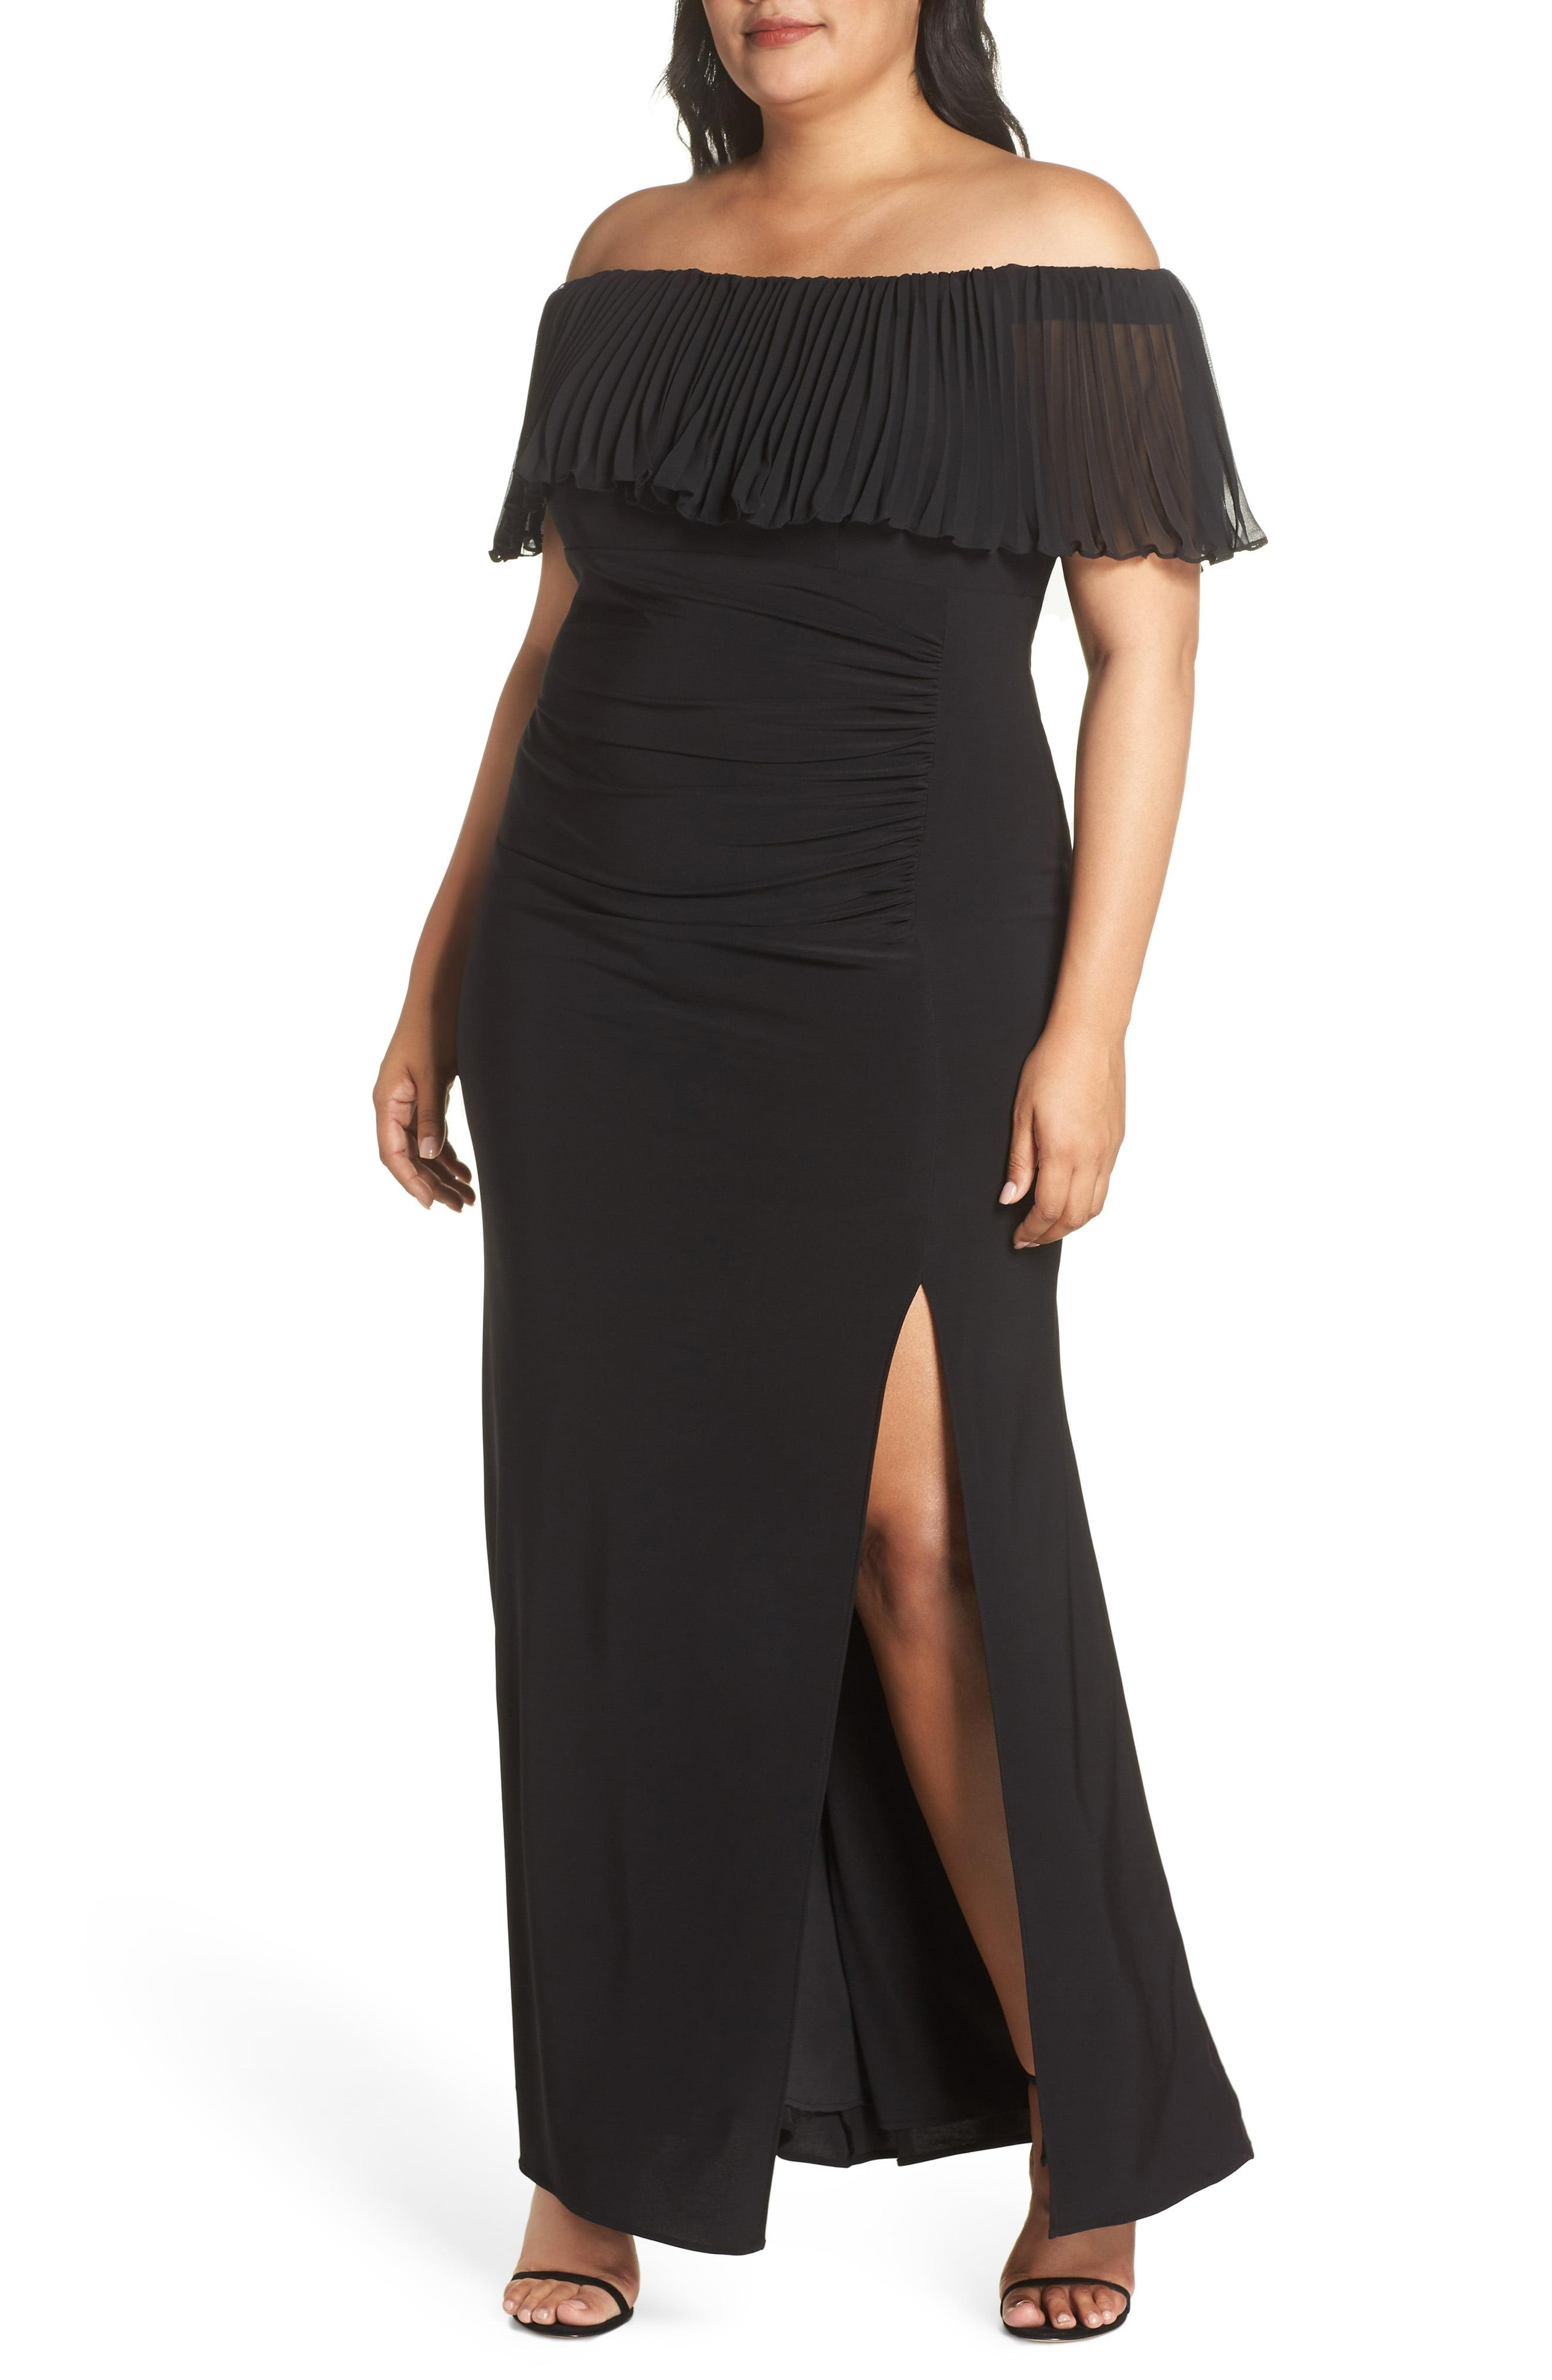 3ebca6858f30 Lyst - Xscape Pleated Chiffon Popover Gown in Black - Save 50%